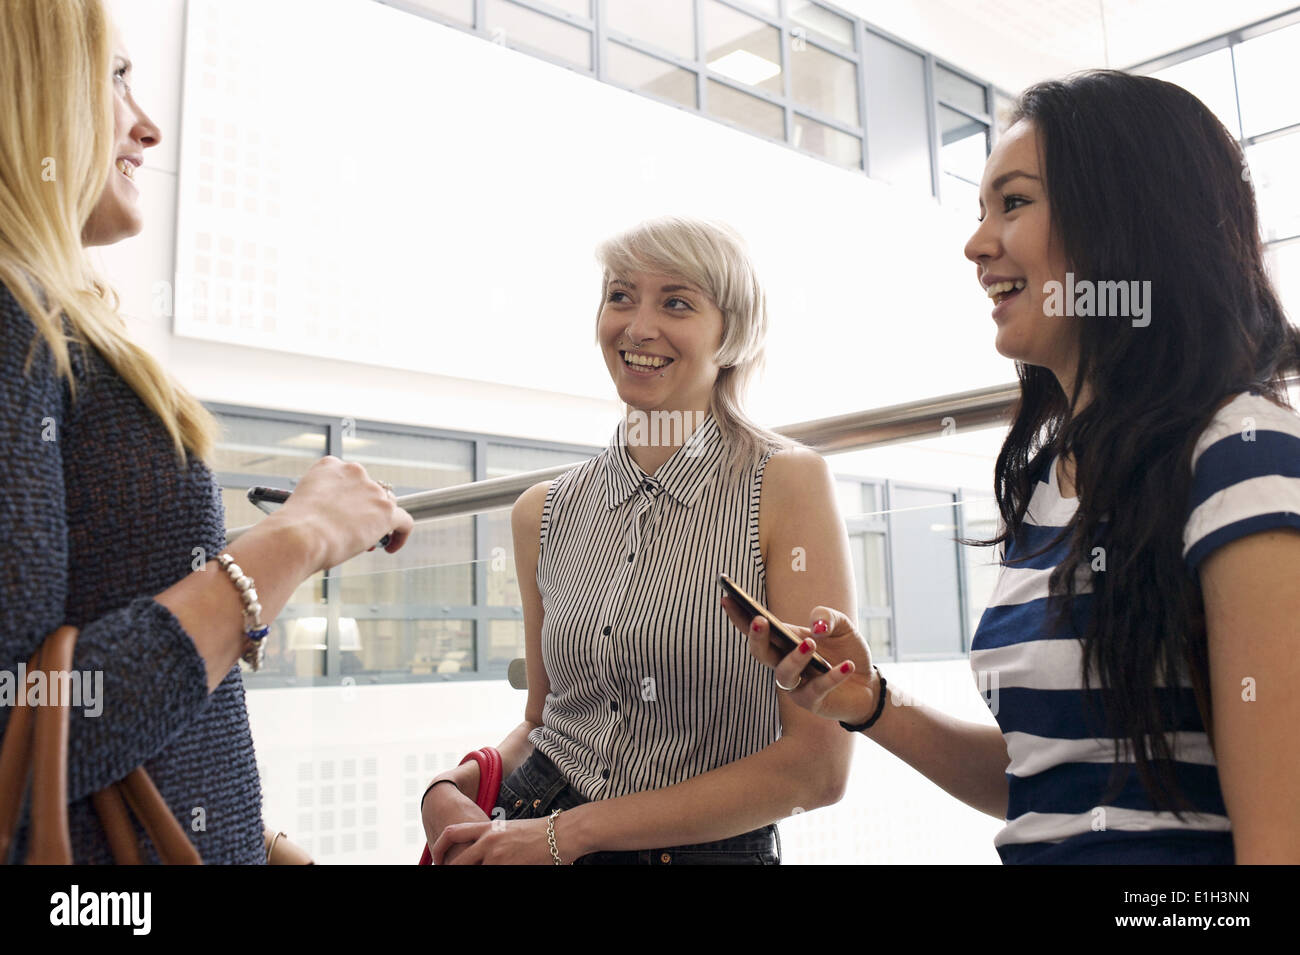 Young women using cell phones - Stock Image